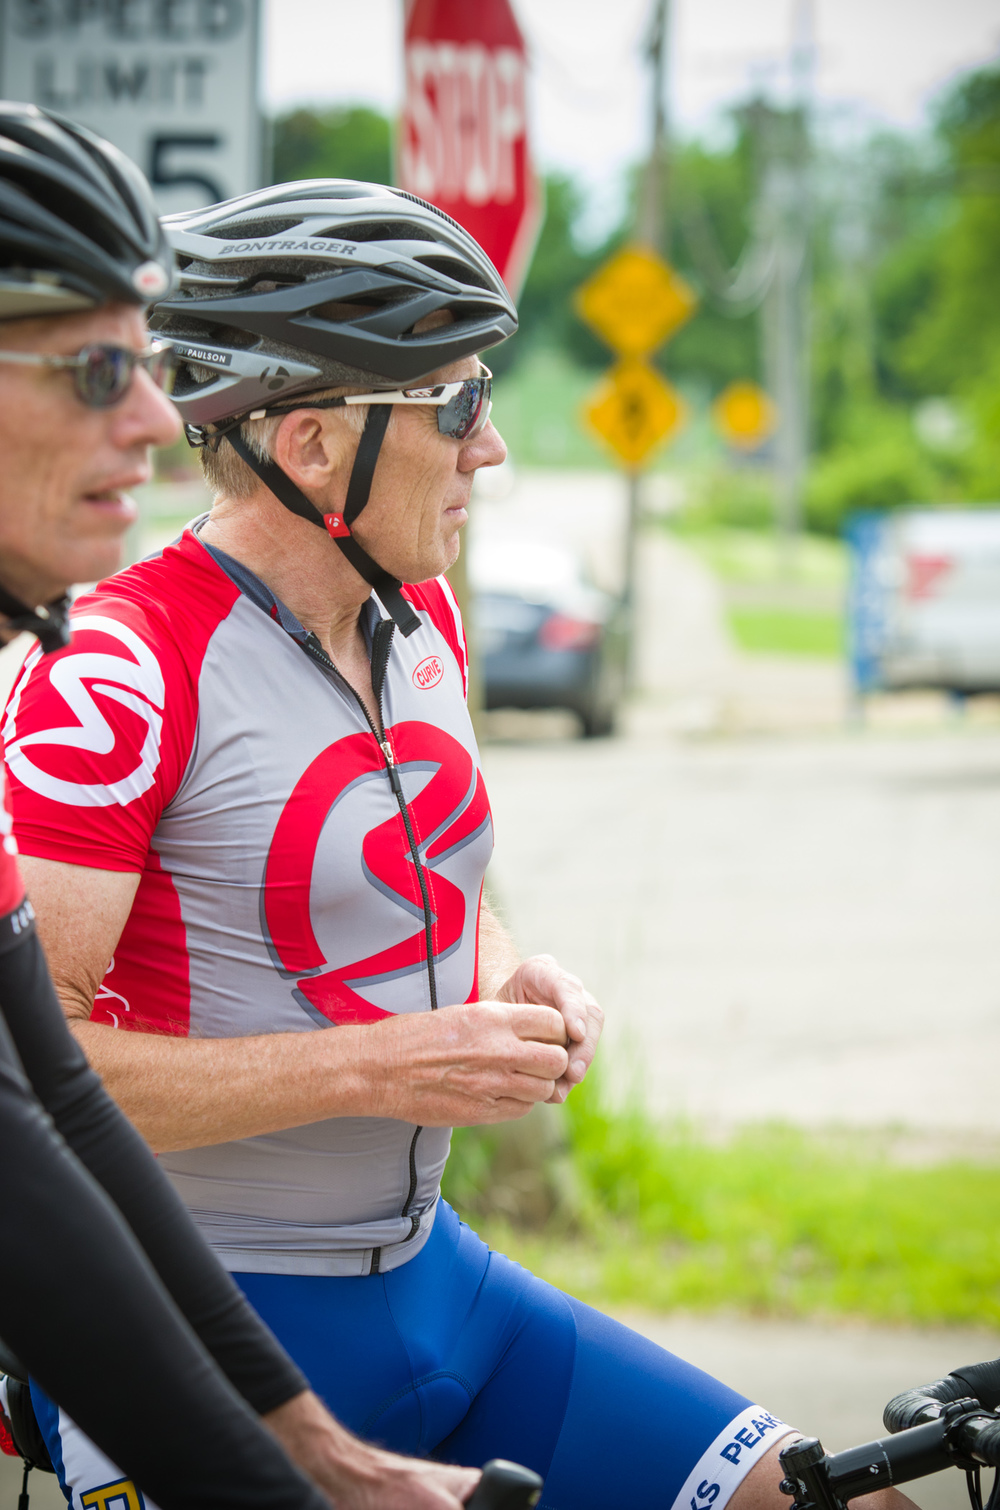 20140615_SpeedCycling_-74.jpg